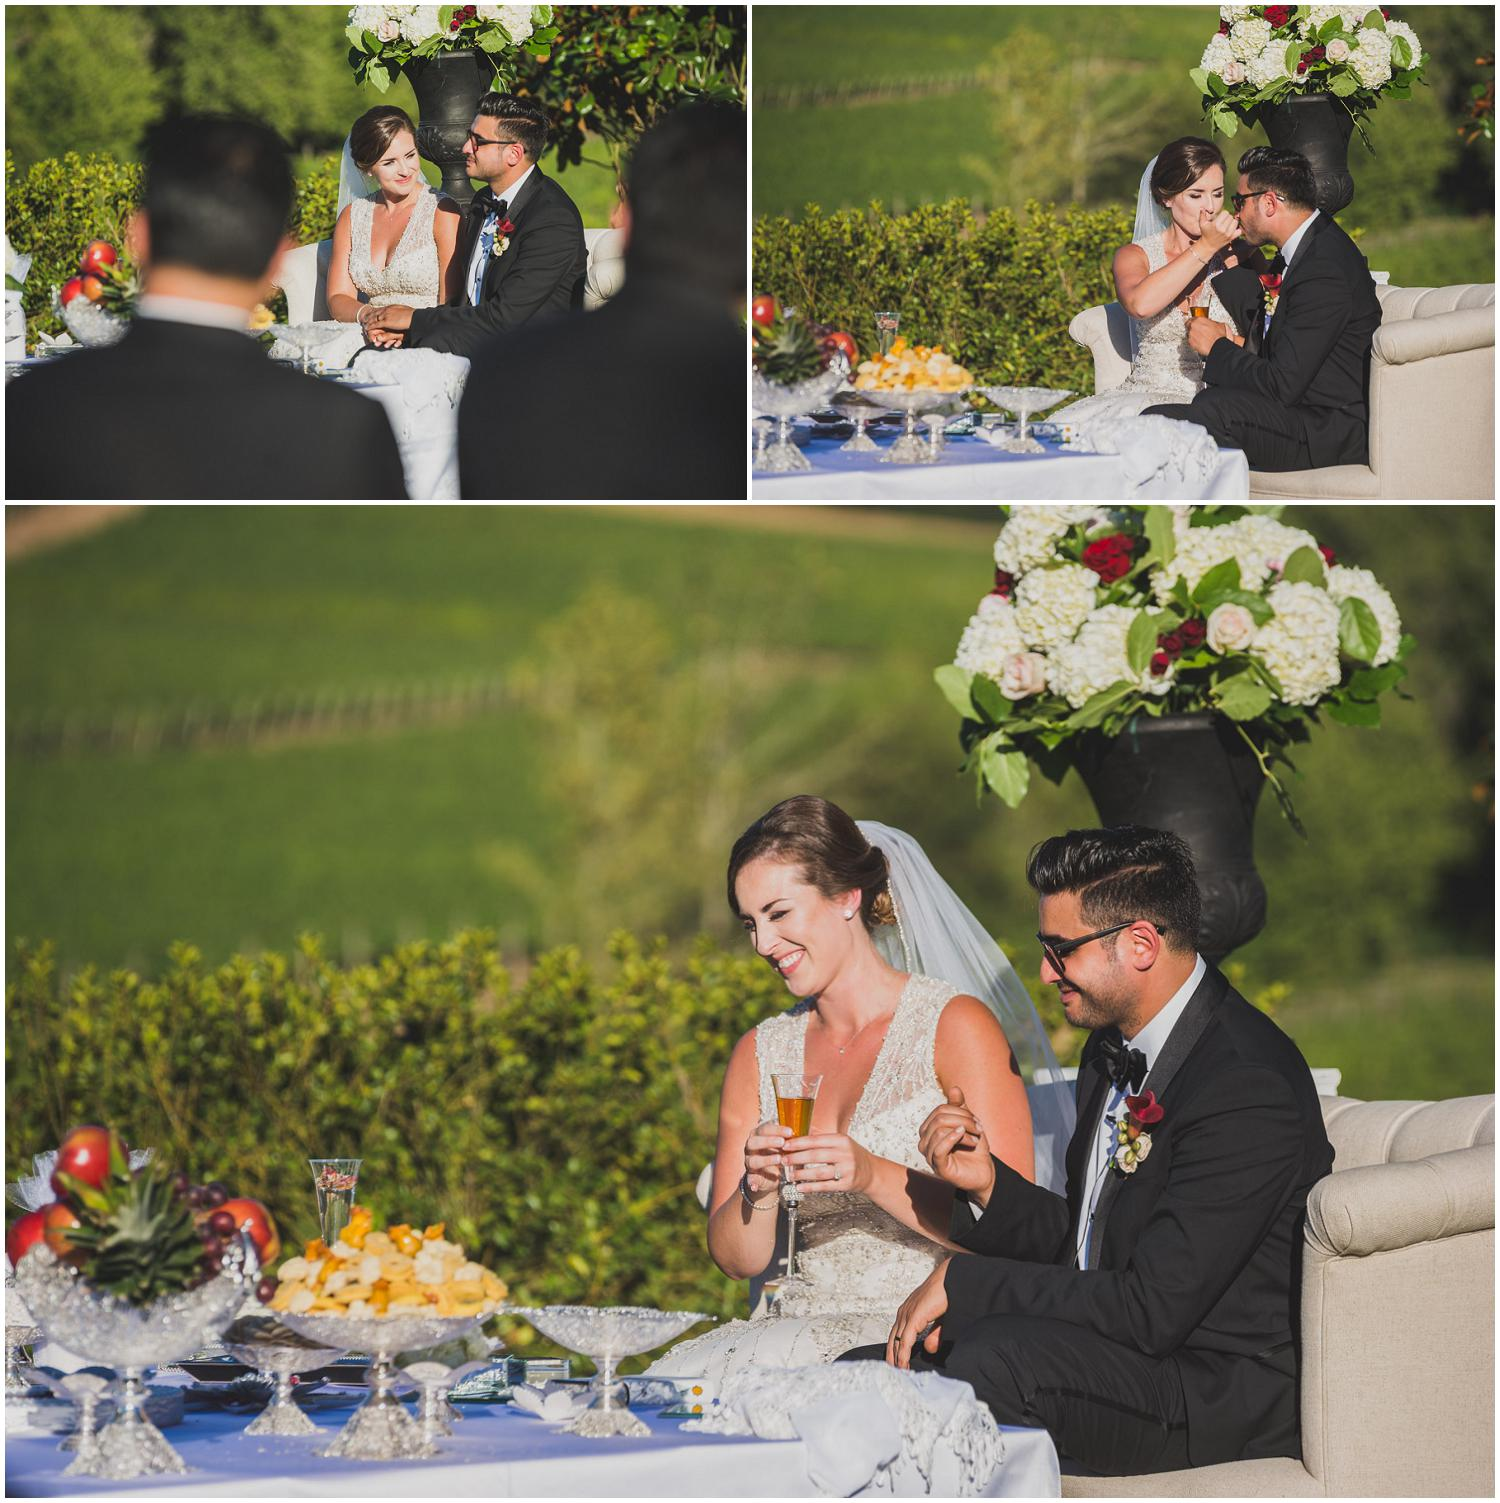 bride and groom eat honey off each other's pinky fingers to symbolize a sweet marriage and life together